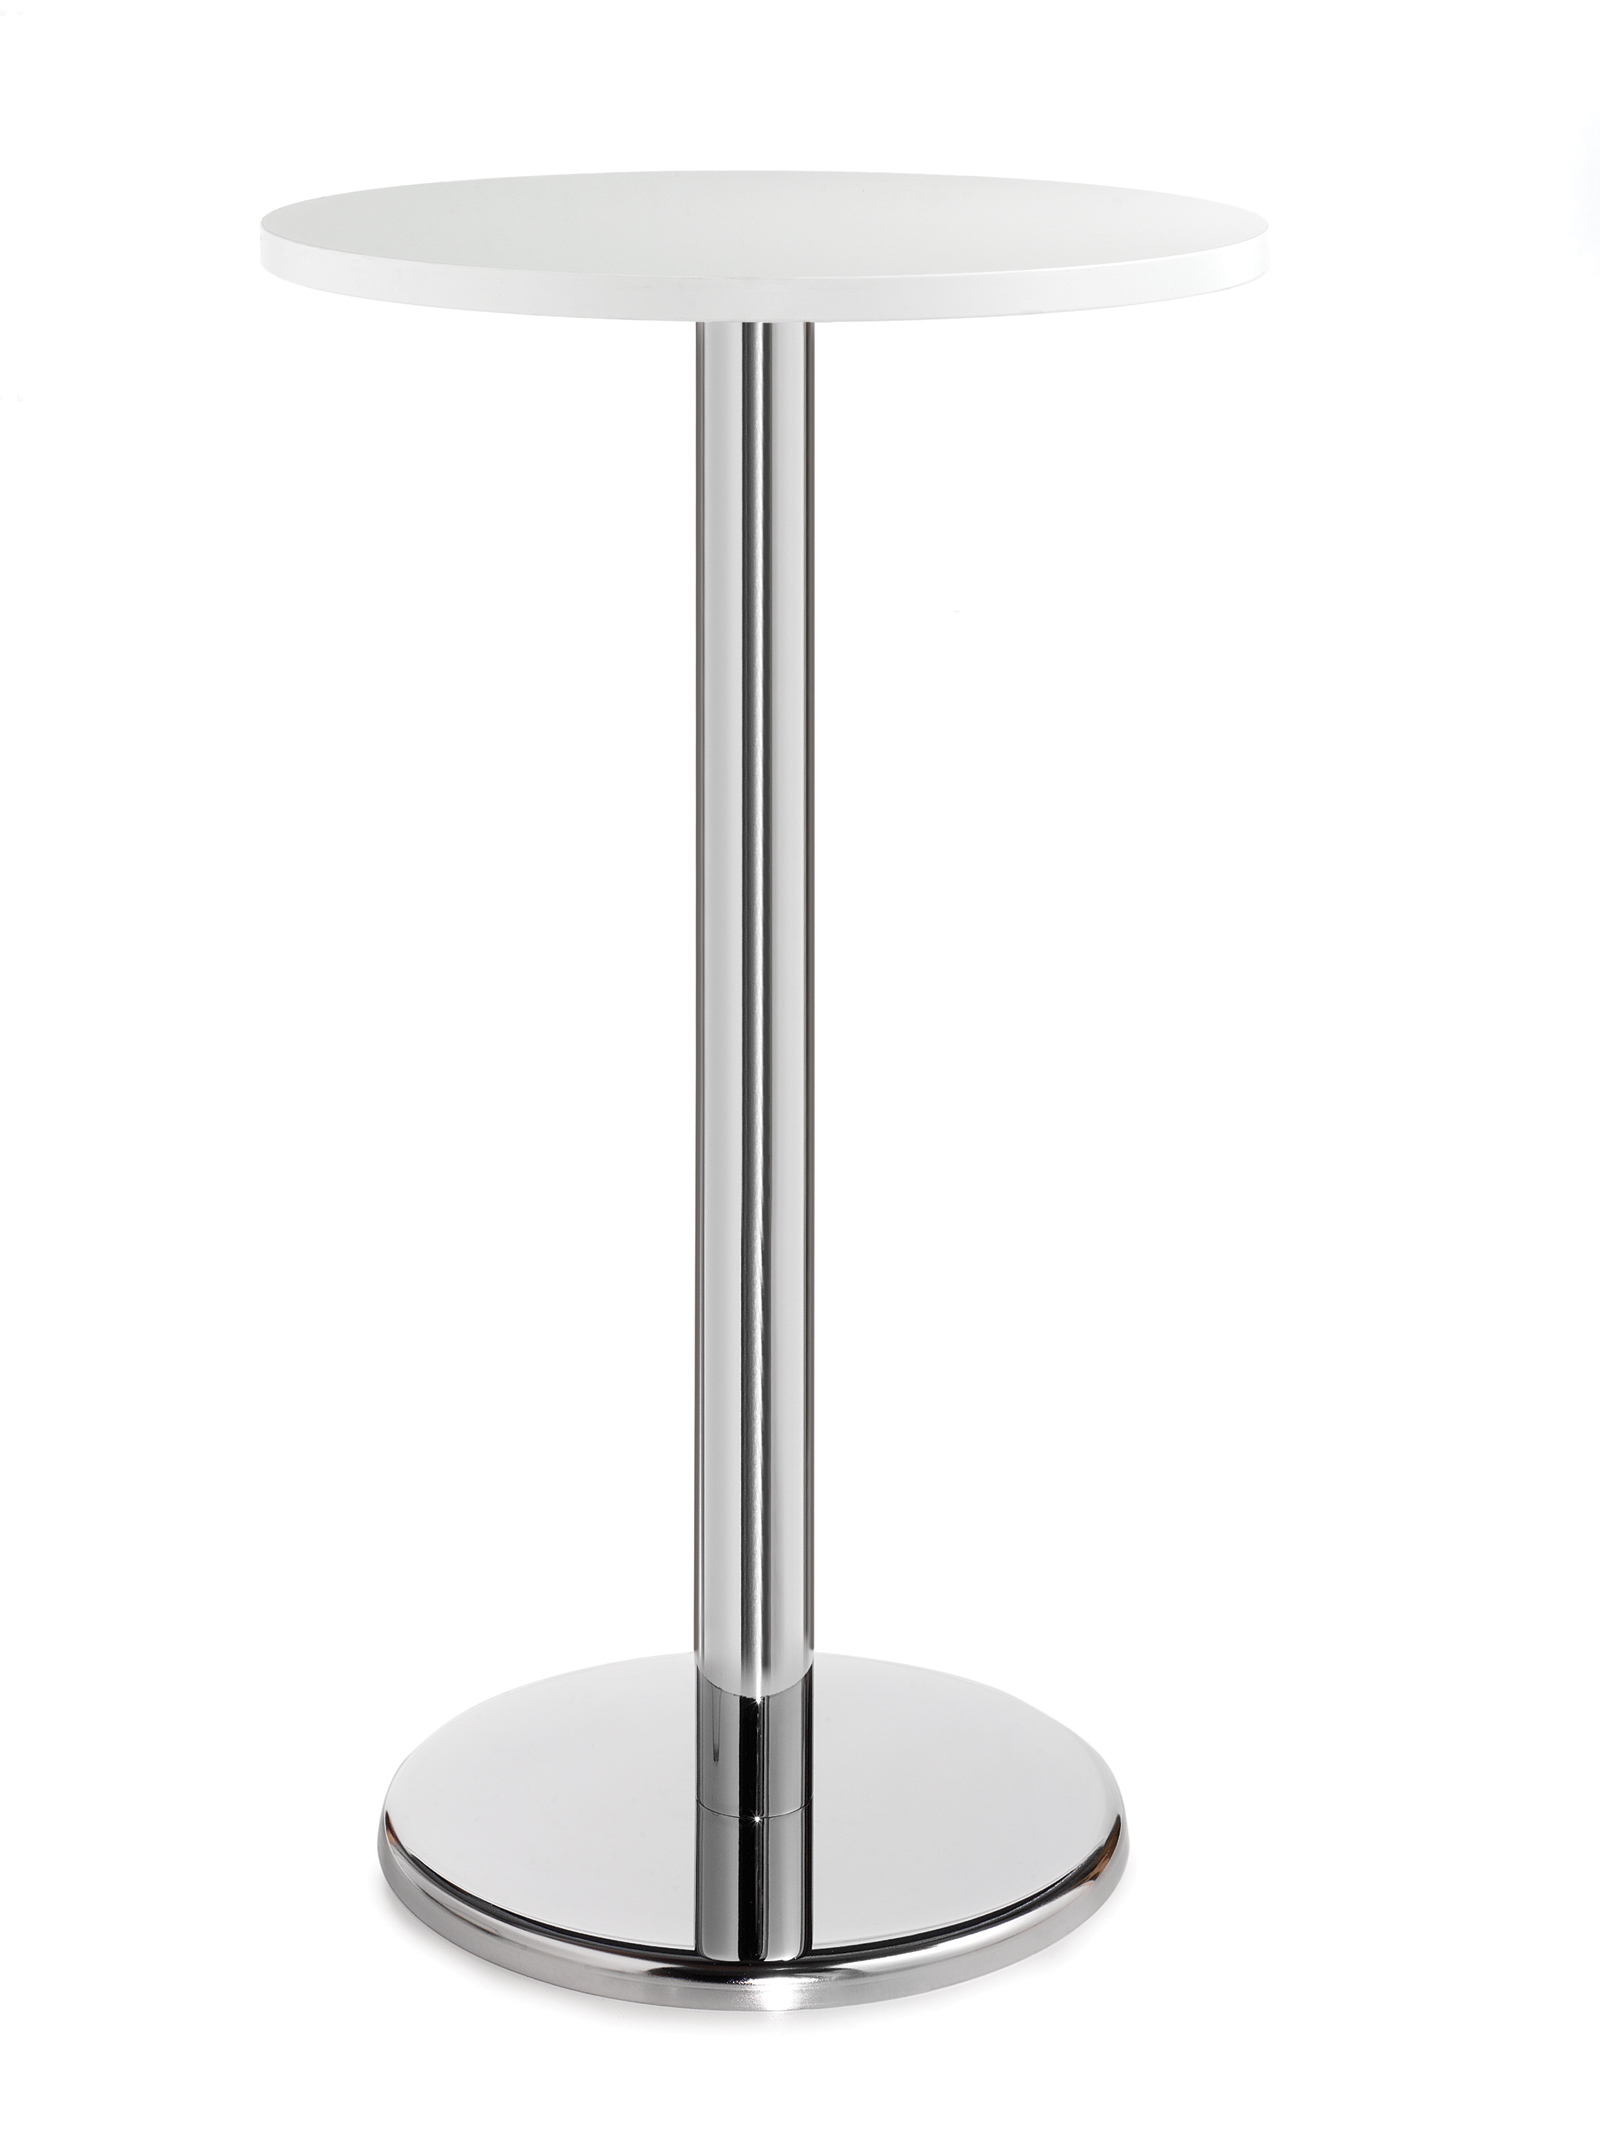 Pisa circular poseur table with round chrome base 800mm - white